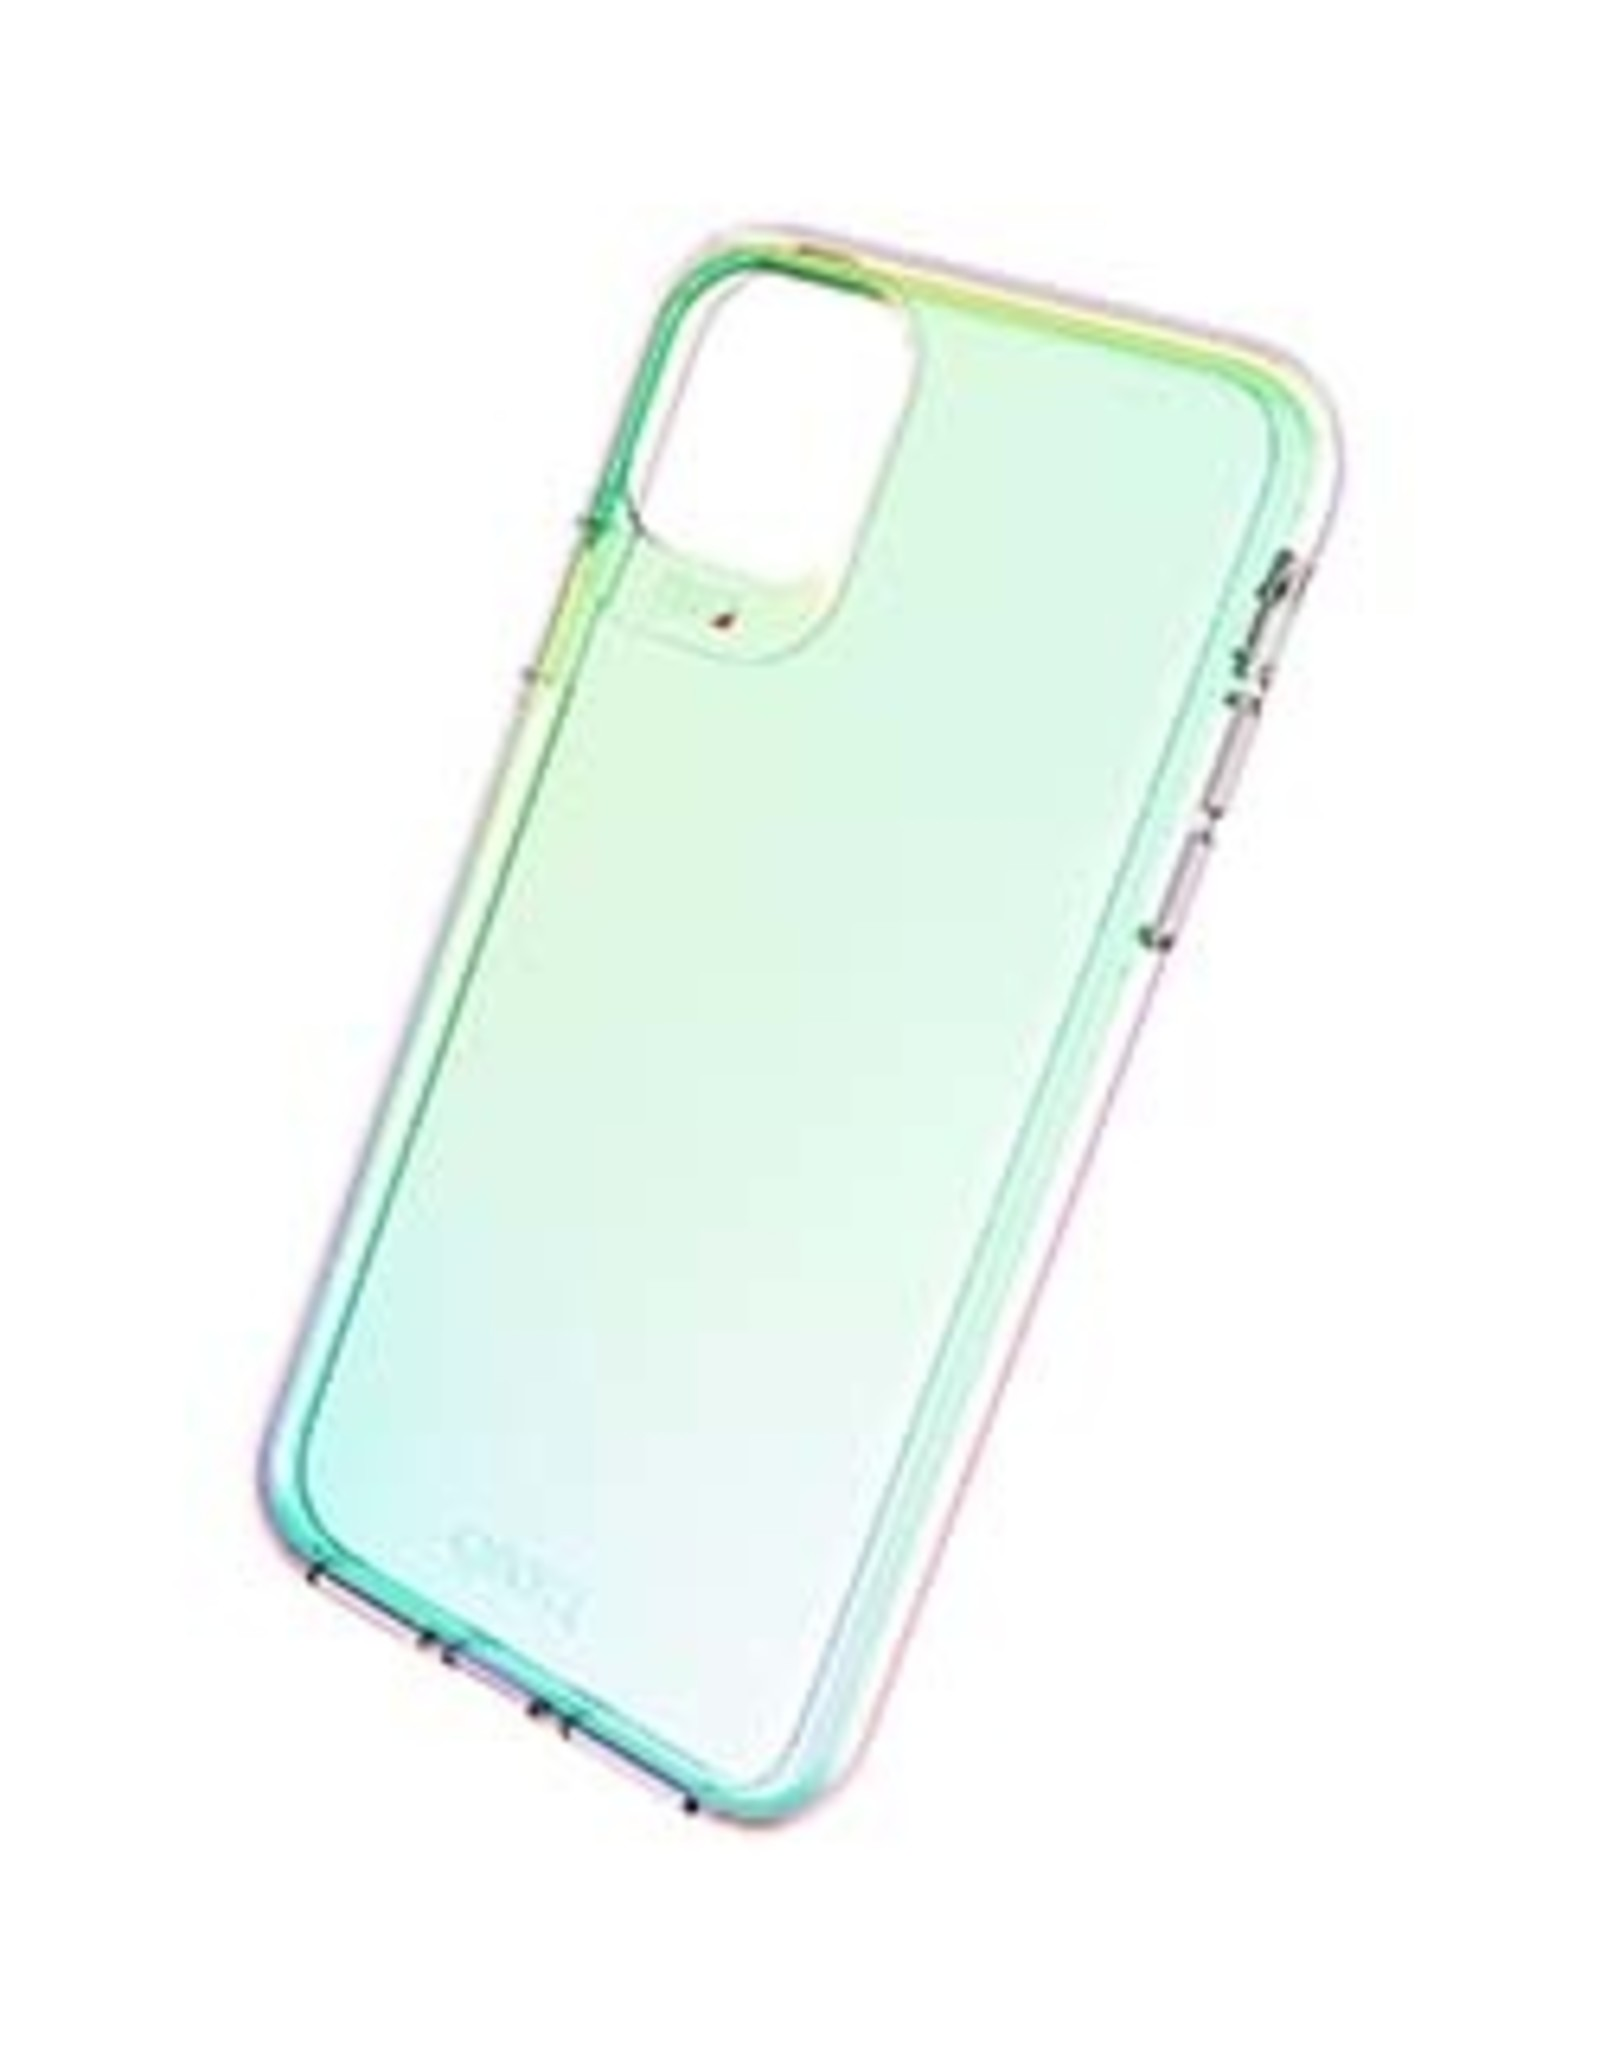 GEAR4 GEAR4 | iPhone 11 Pro Max  D3O Crystal Palace Iridescent Case 15-04779